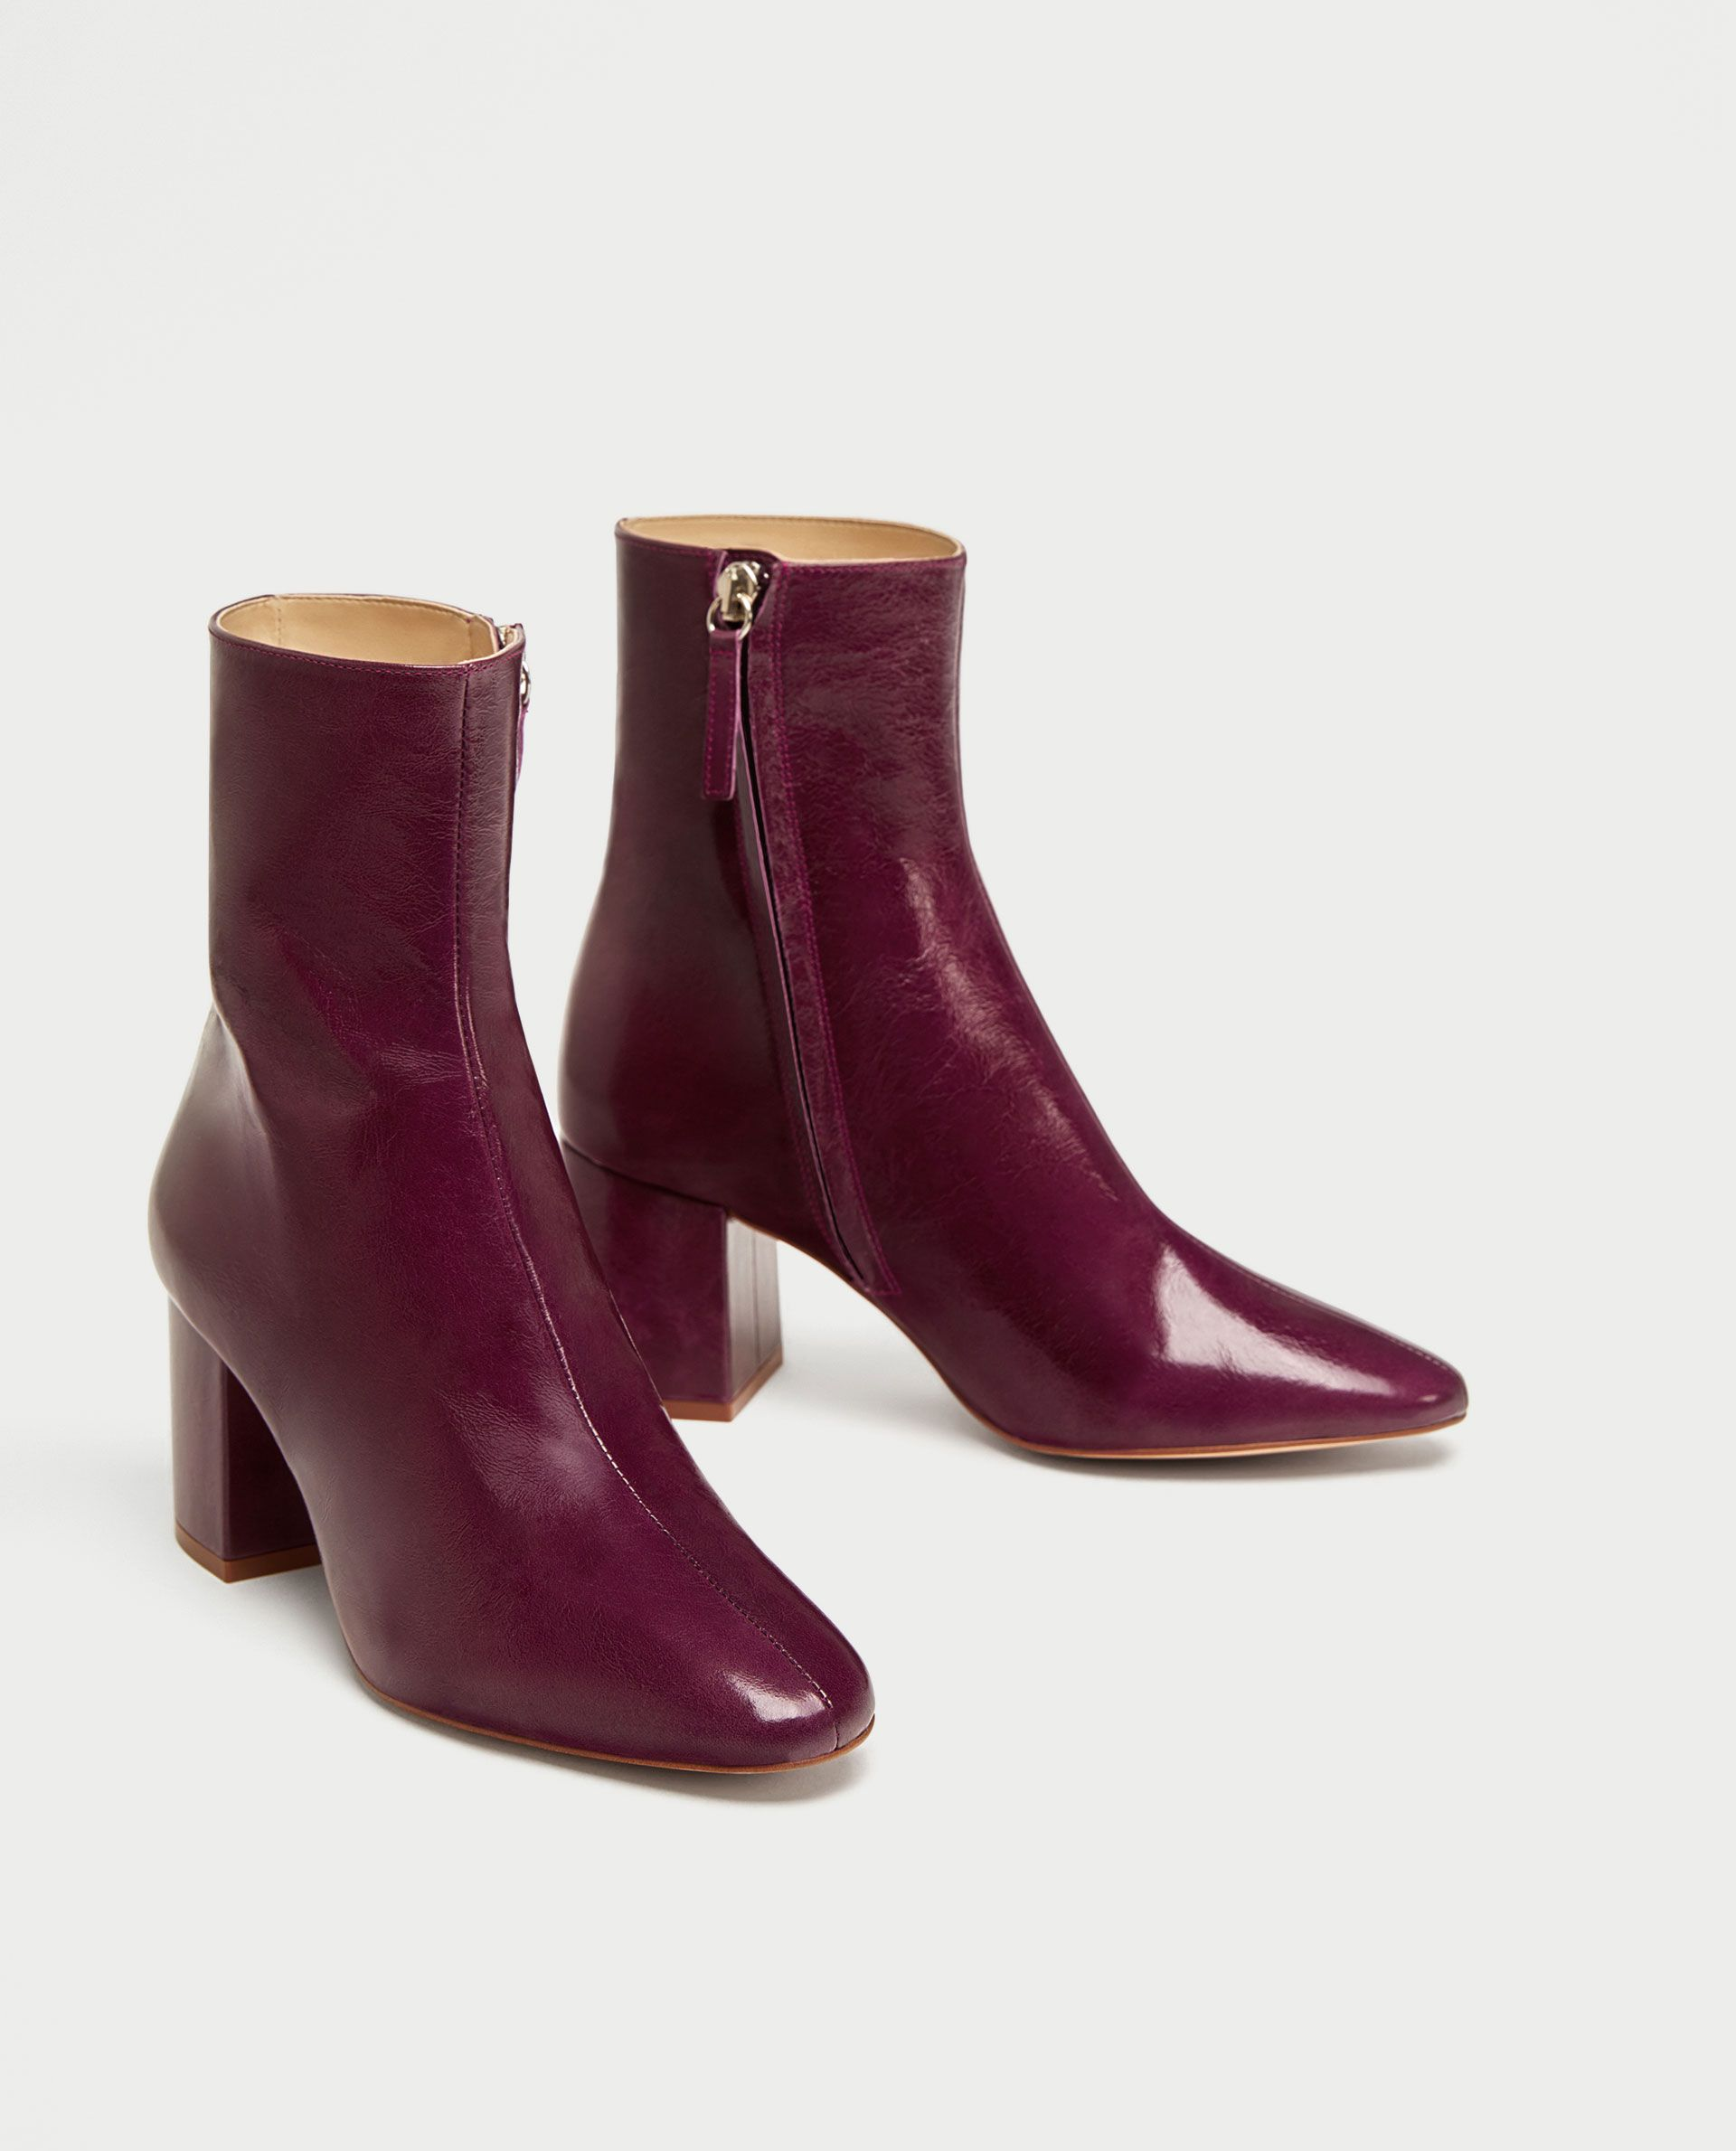 96f11c110 ZARA - WOMAN - LEATHER ANKLE BOOTS WITH BLOCK HEEL